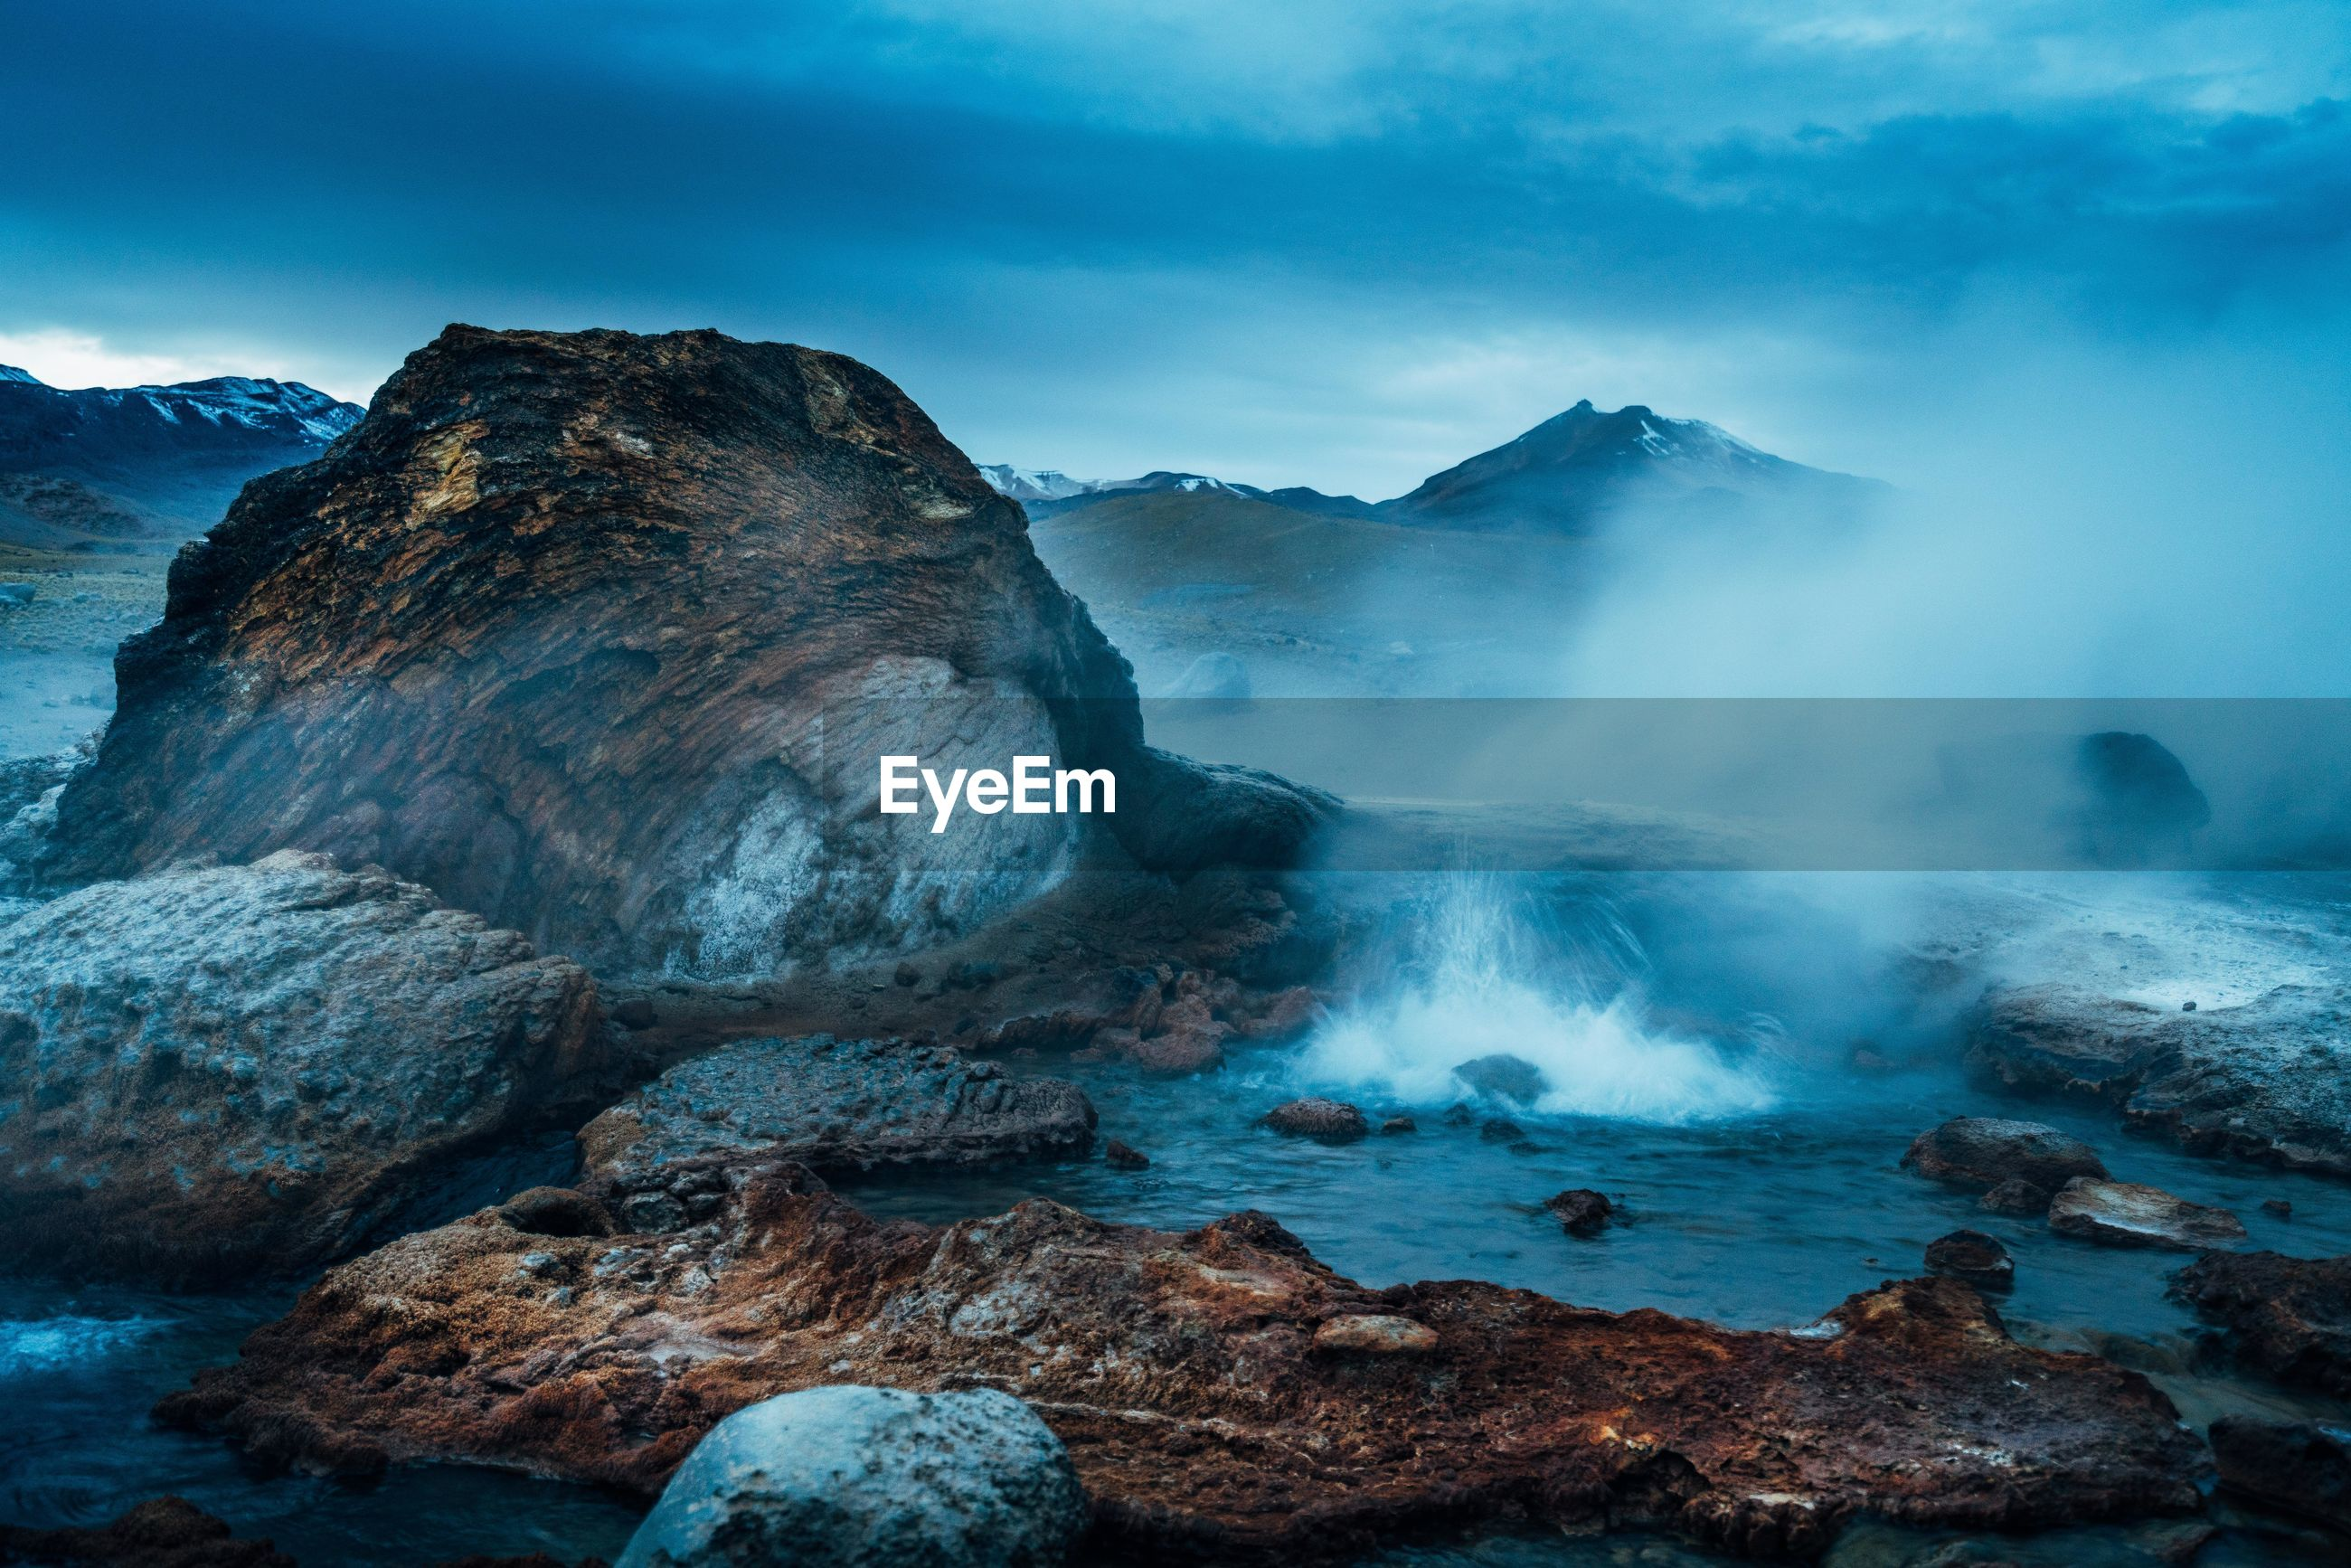 Scenic view of volcanic landscape against cloudy sky